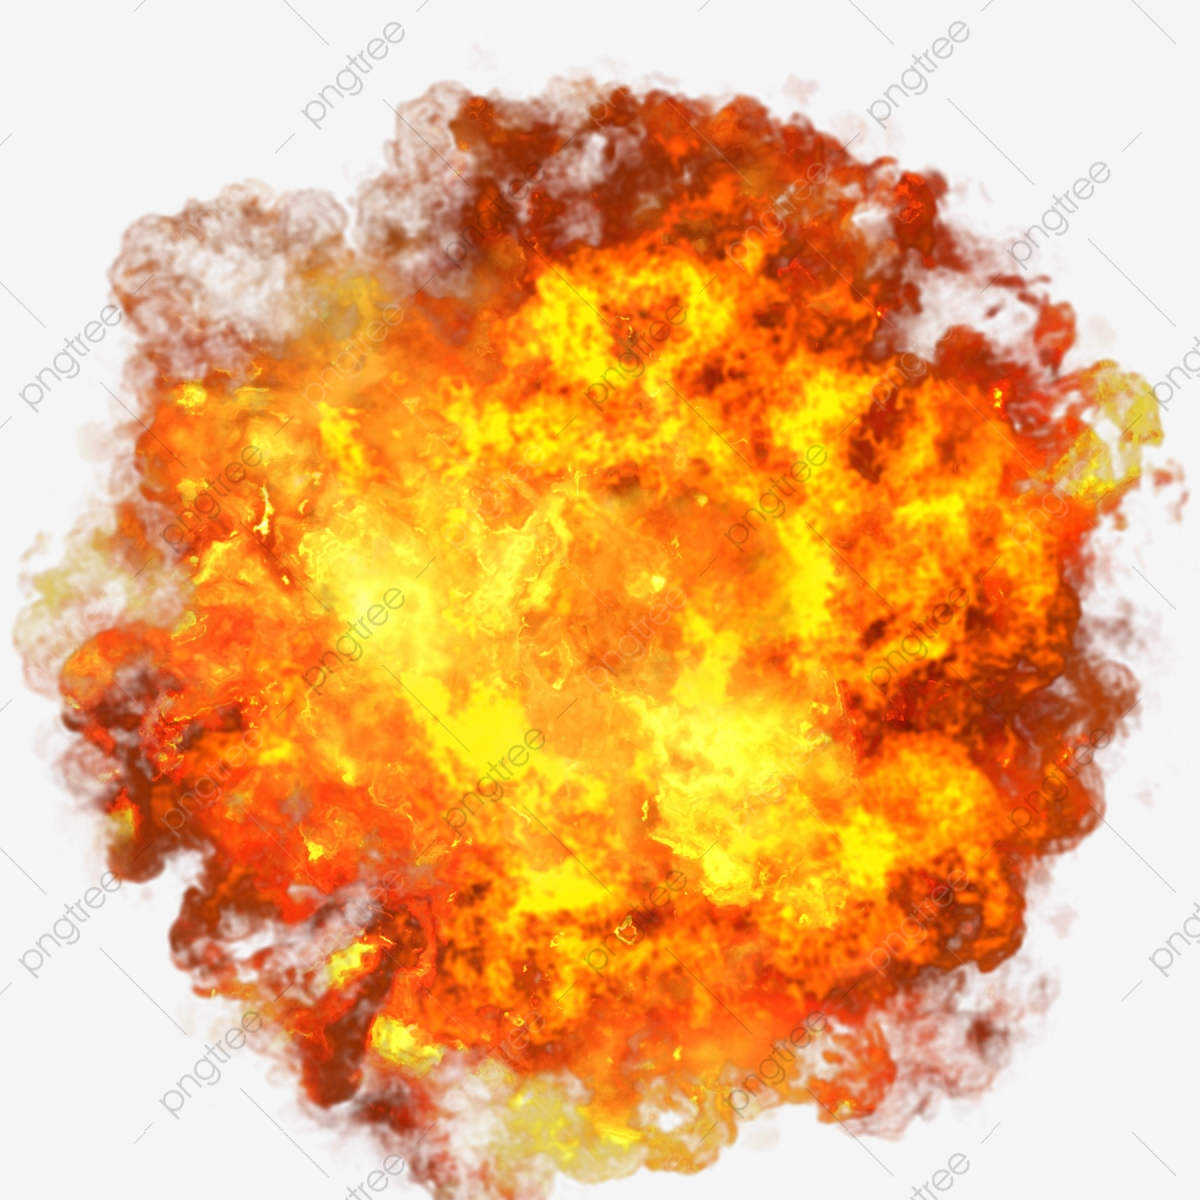 fire explosion blast flame png transparent fire fire png fire clipart png transparent clipart image and psd file for free download https pngtree com freepng fire explosion blast flame png transparent 4199261 html